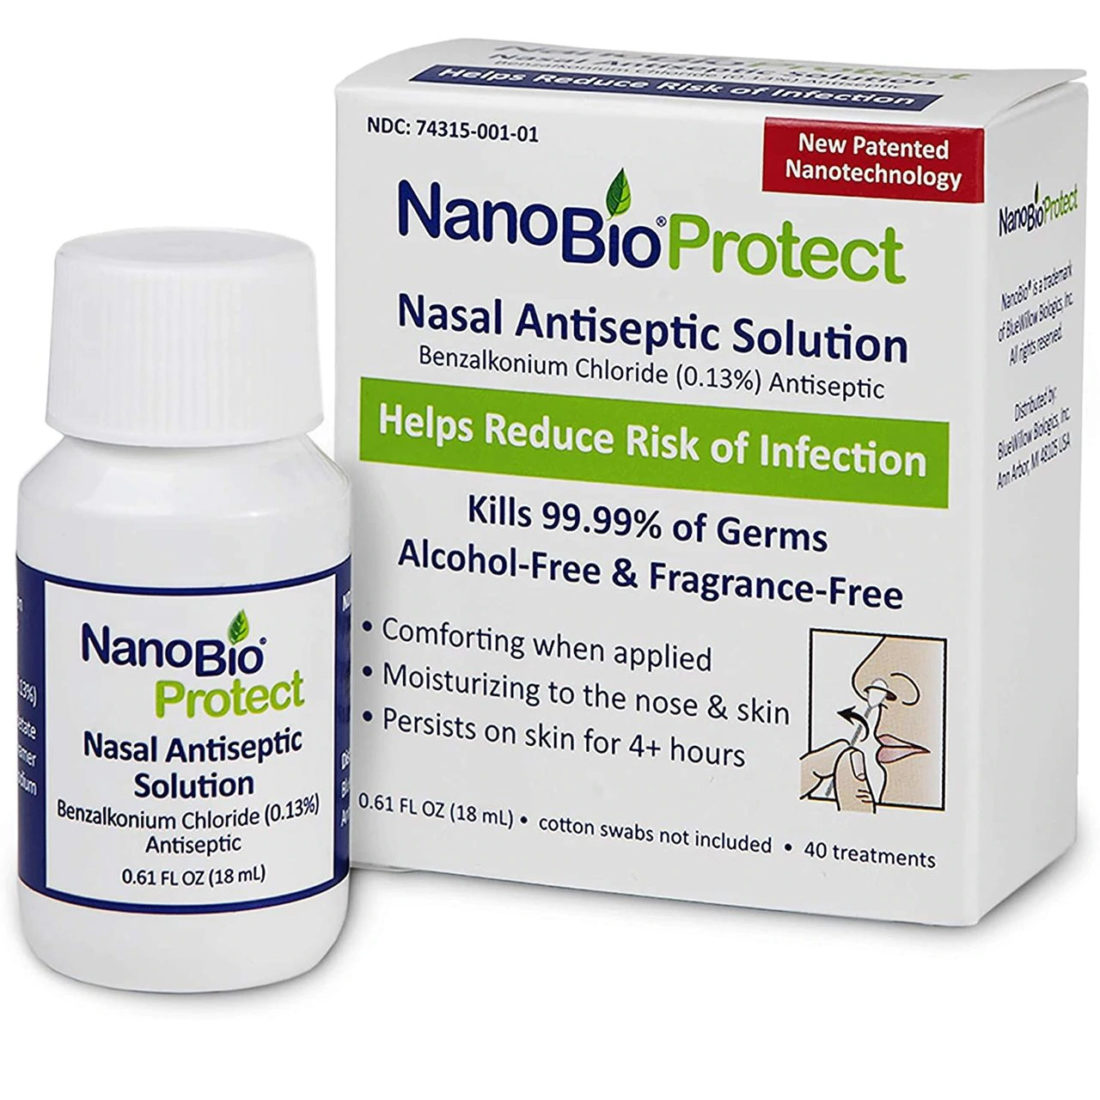 NanoBio-Protect-Nasal-Antiseptic-Solution